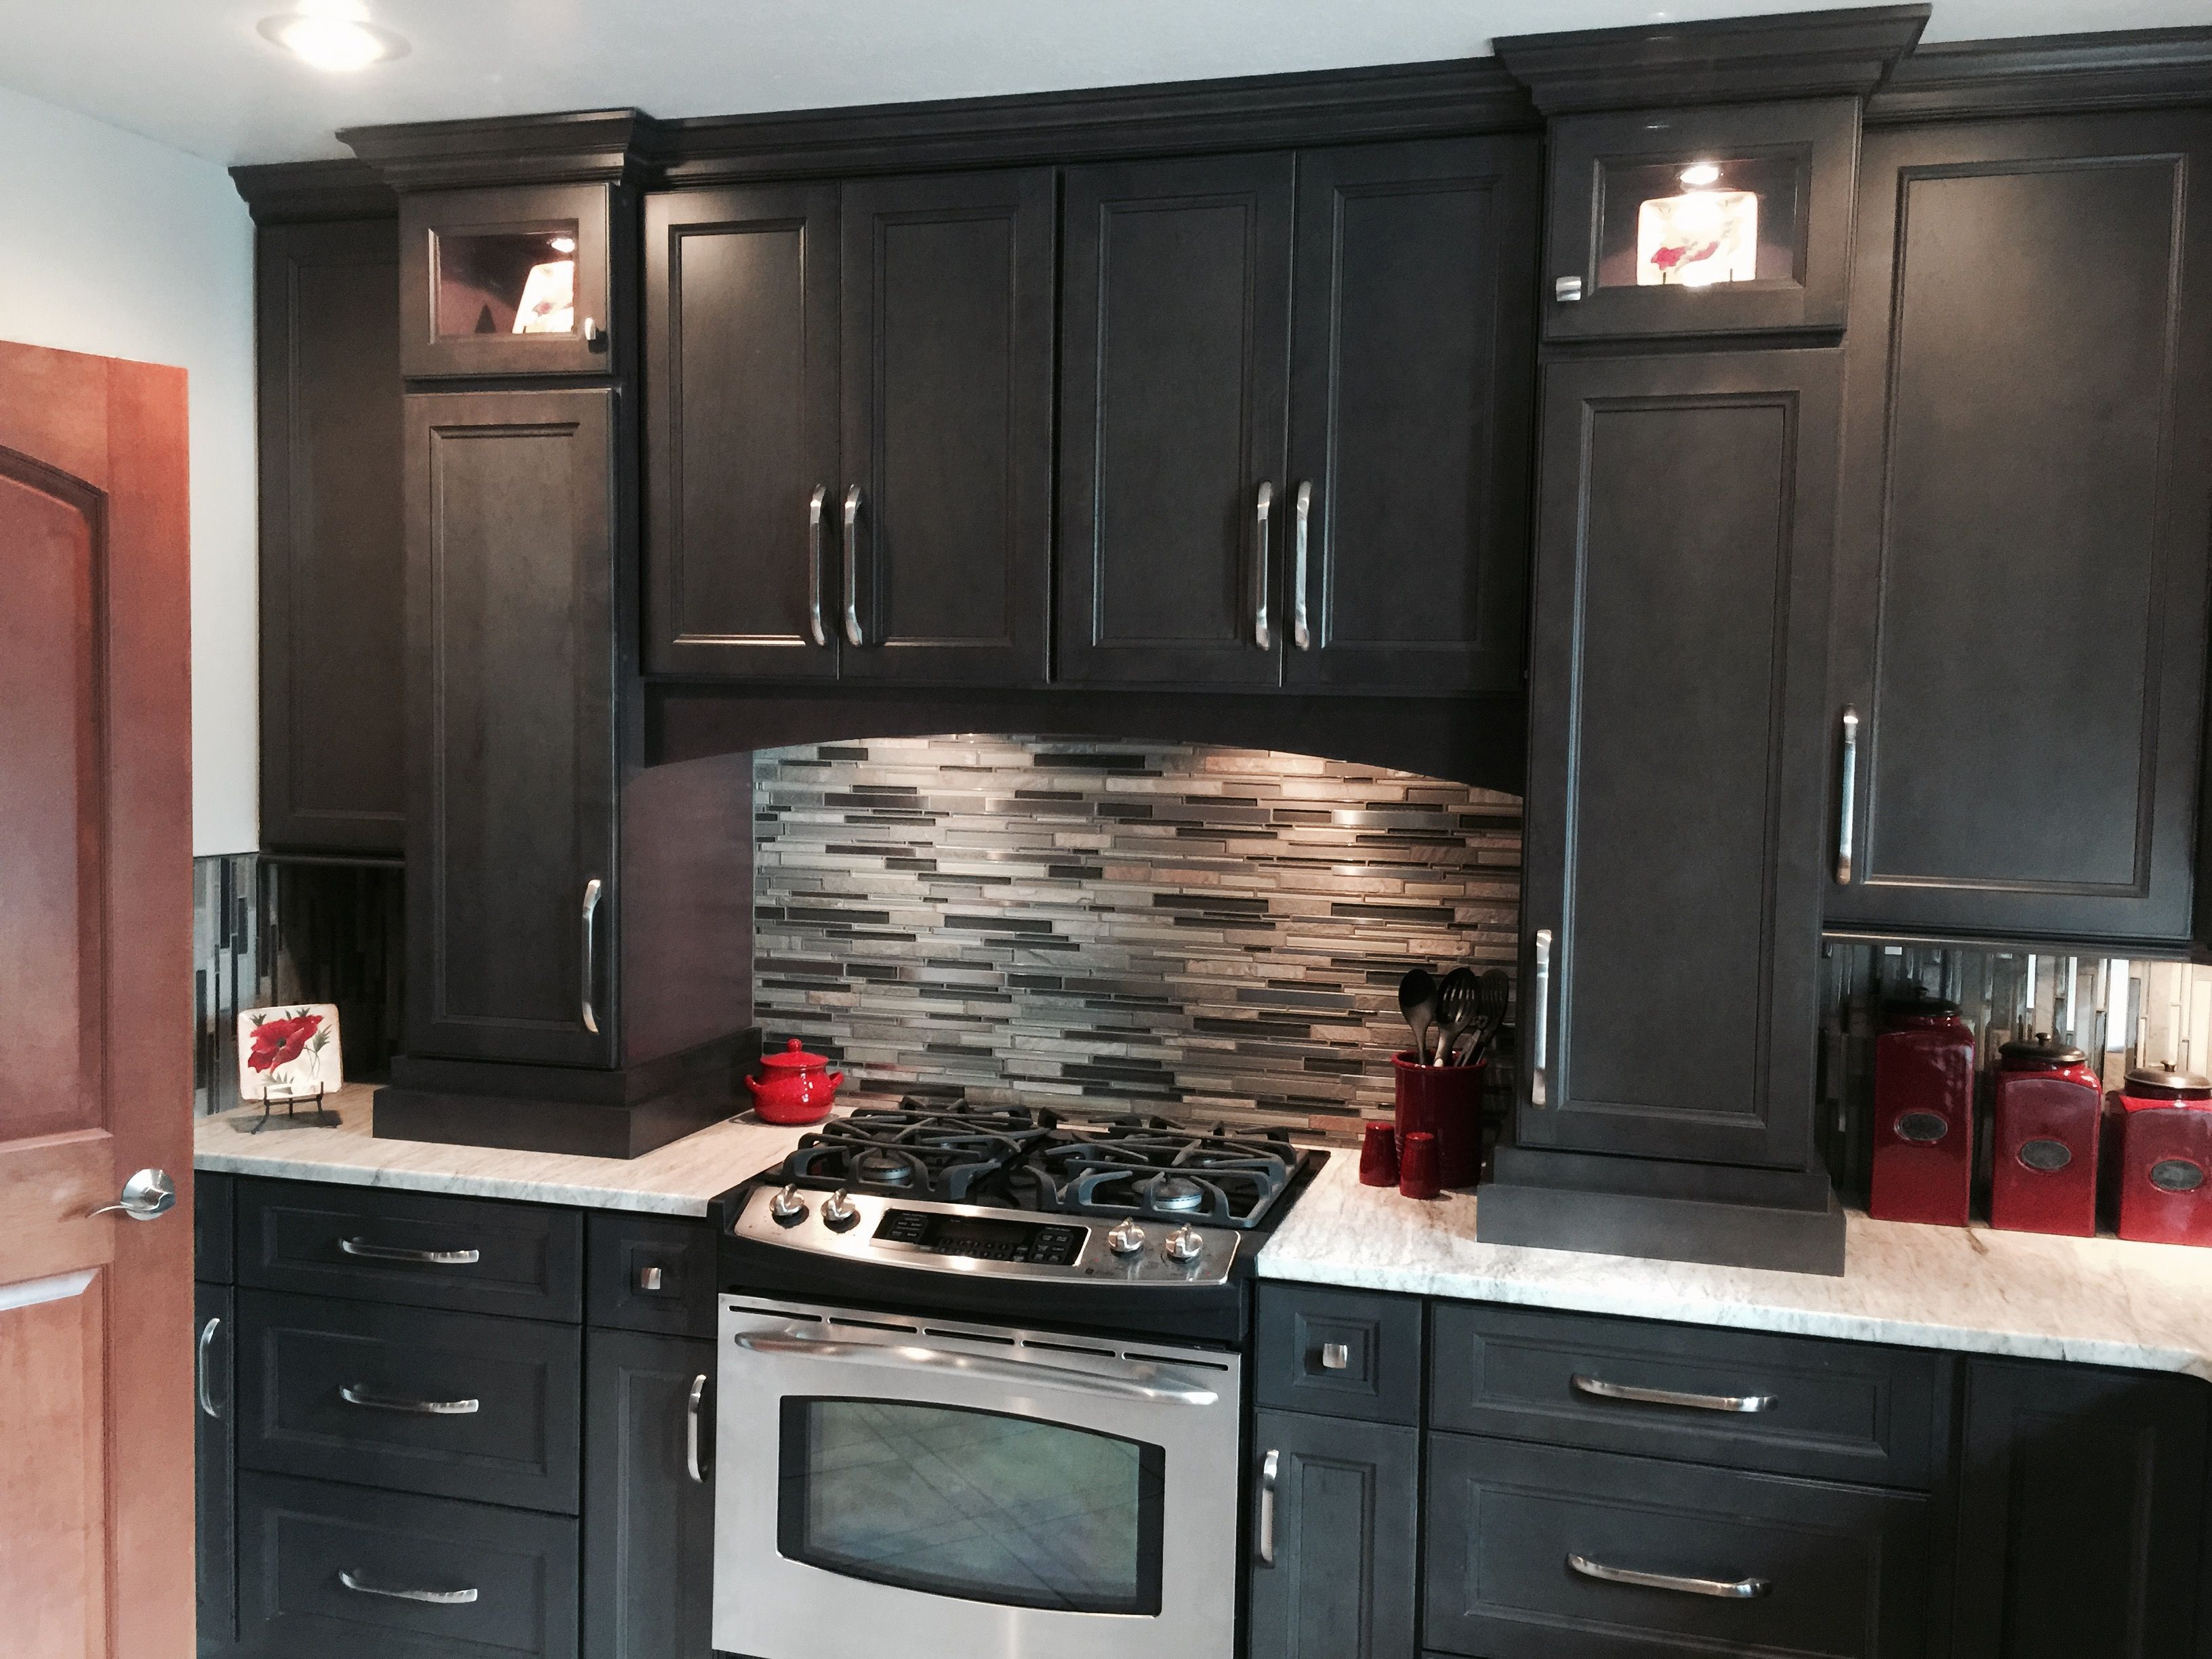 West Point Grey Kitchen Kitchen Cabinets Cabinetry Design Stained Kitchen Cabinets